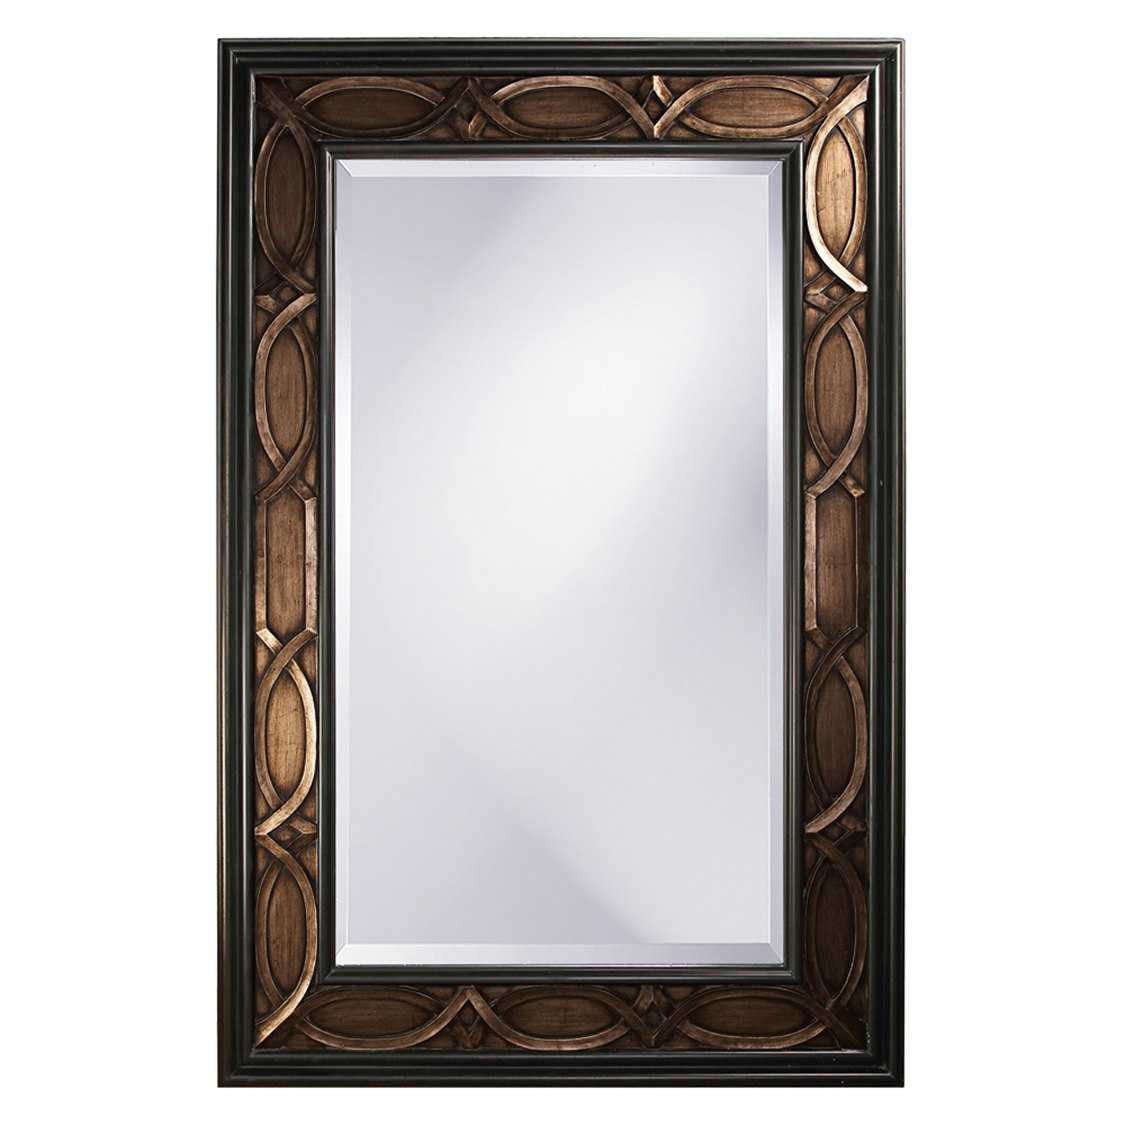 Howard elliott charles 60 x 90 brown wall mirror 43070 for Miroir 60x90